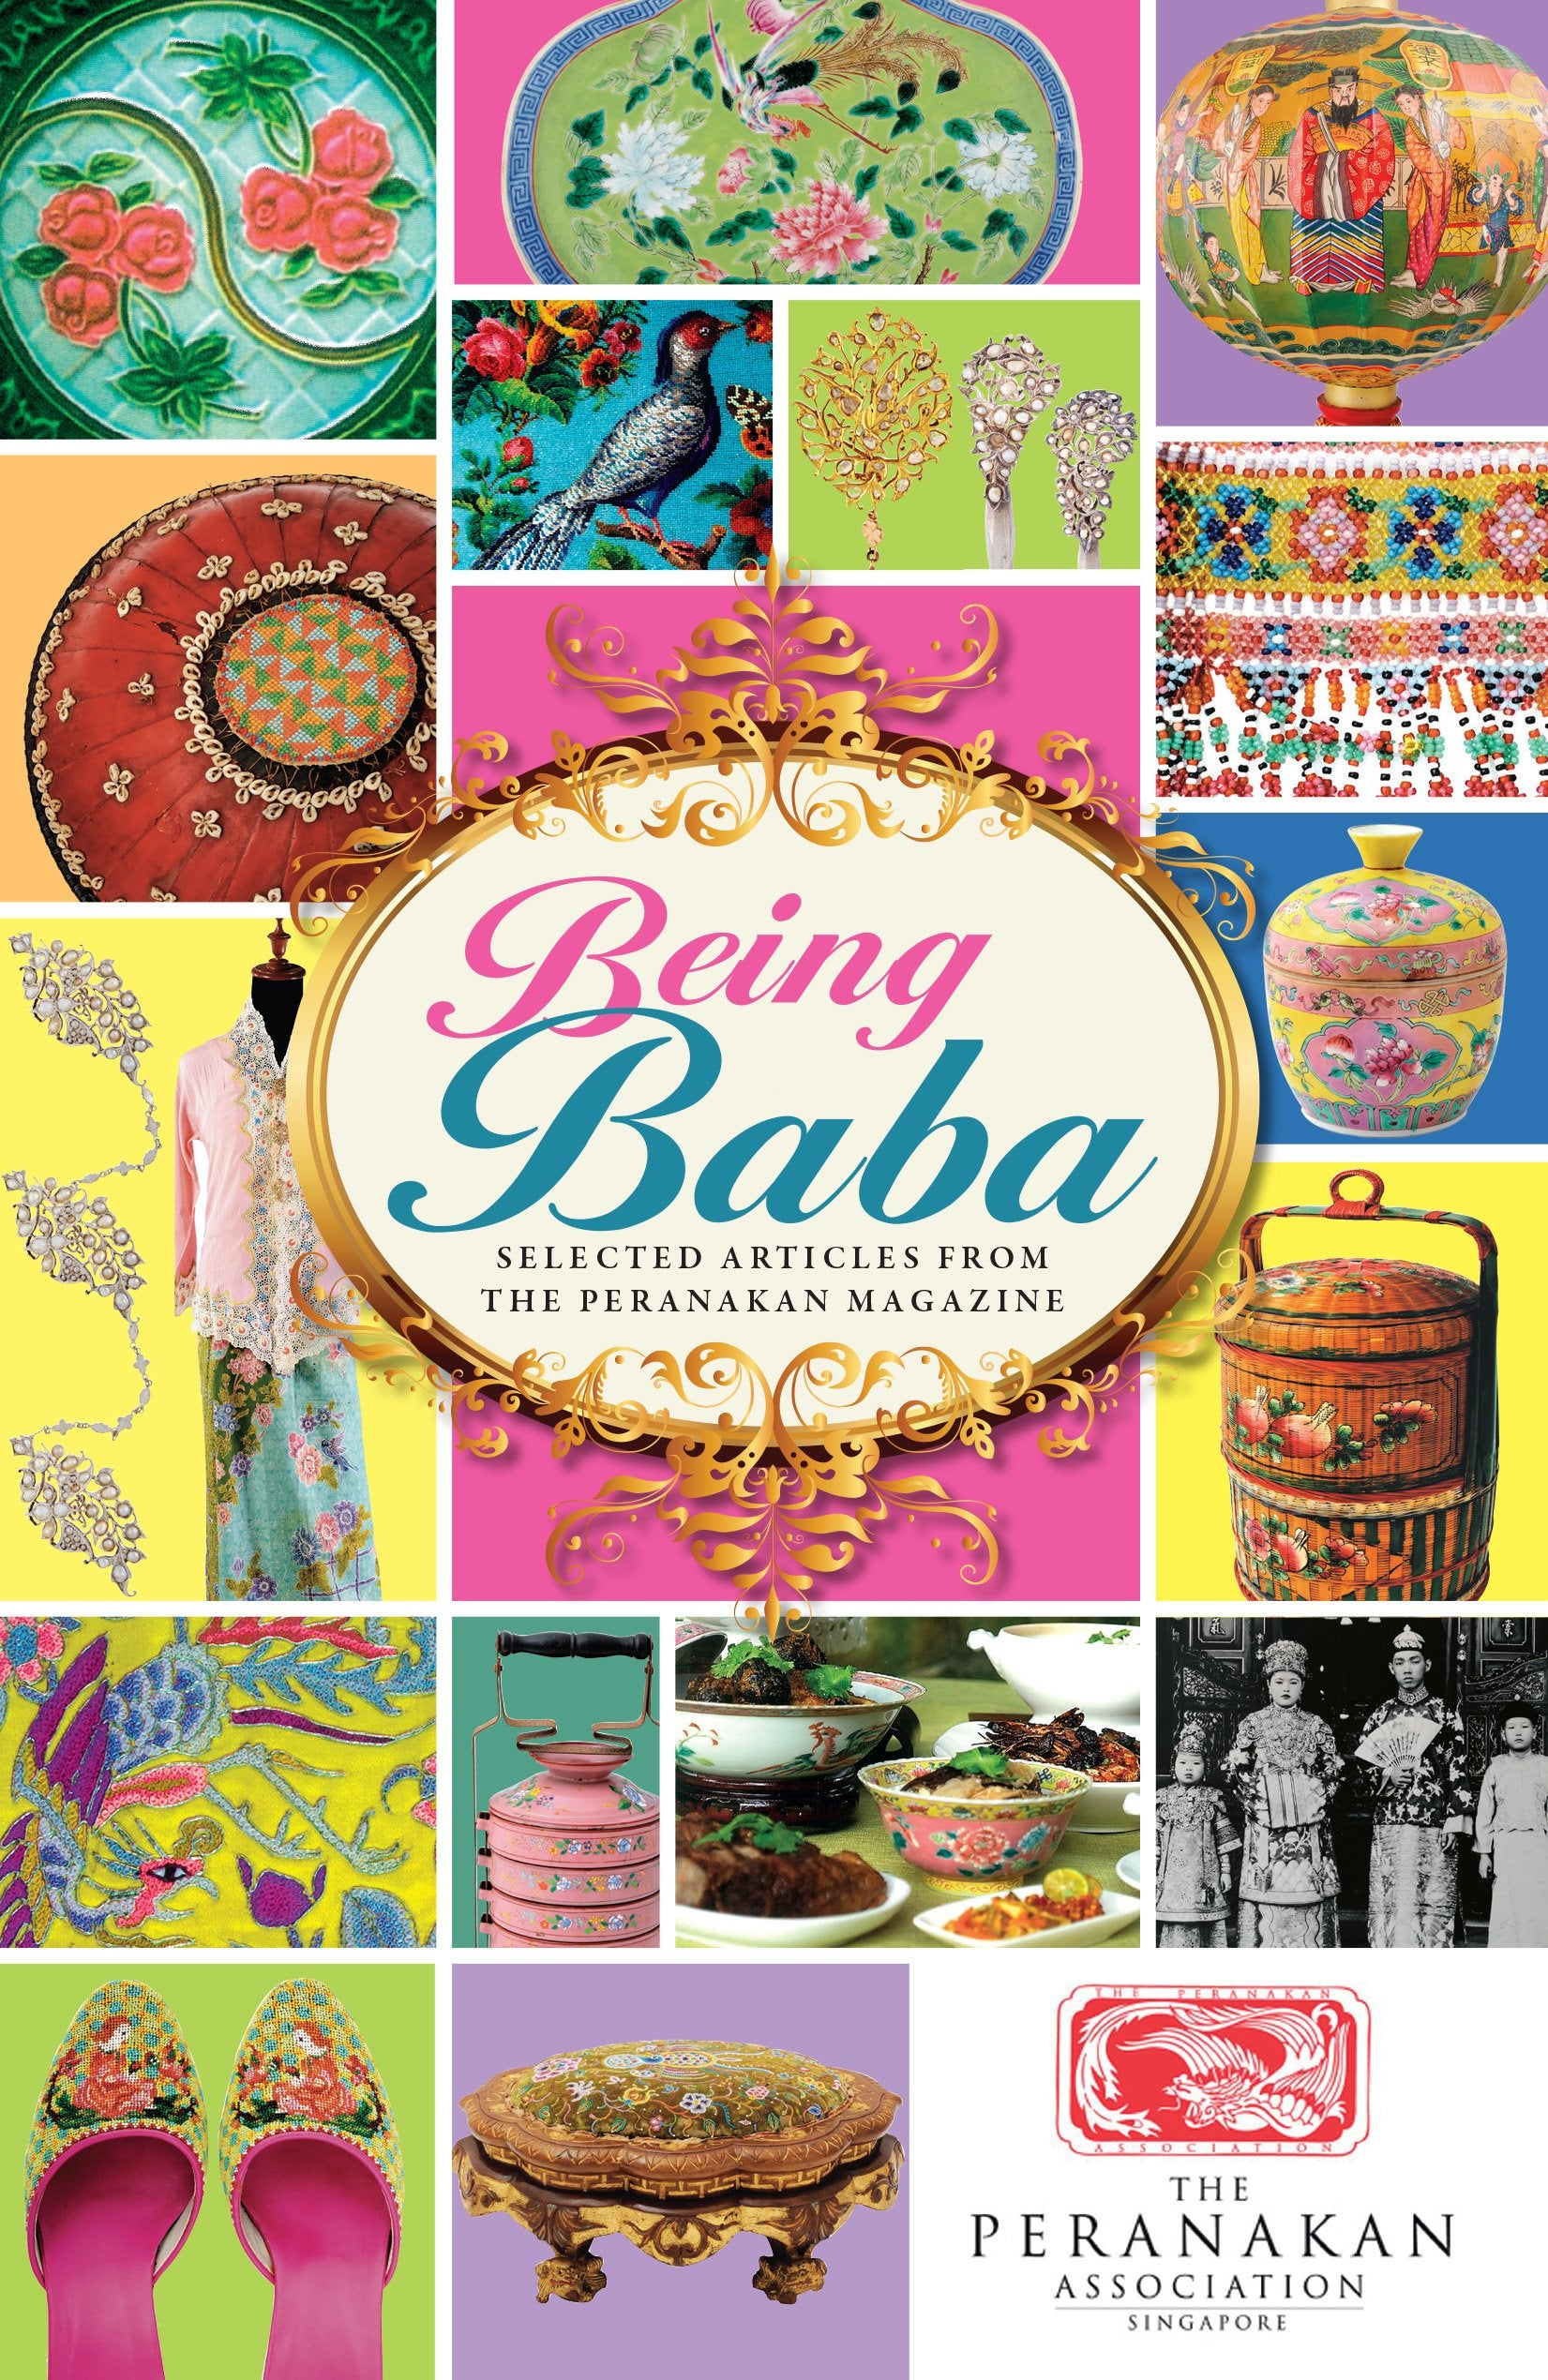 Being Baba: Selected Articles from The Peranakan Magazine